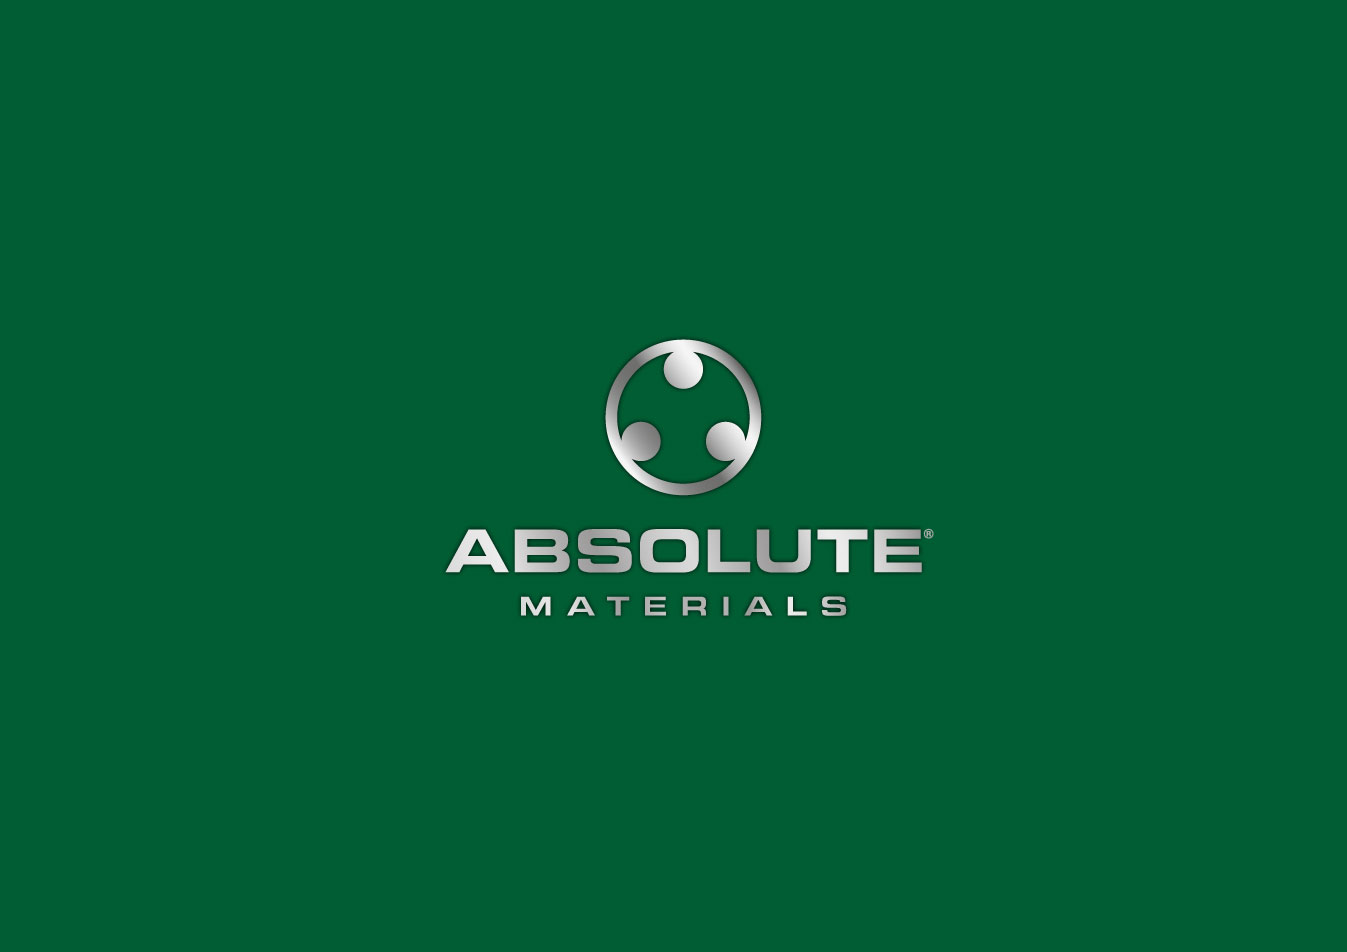 Absolute Materials logo